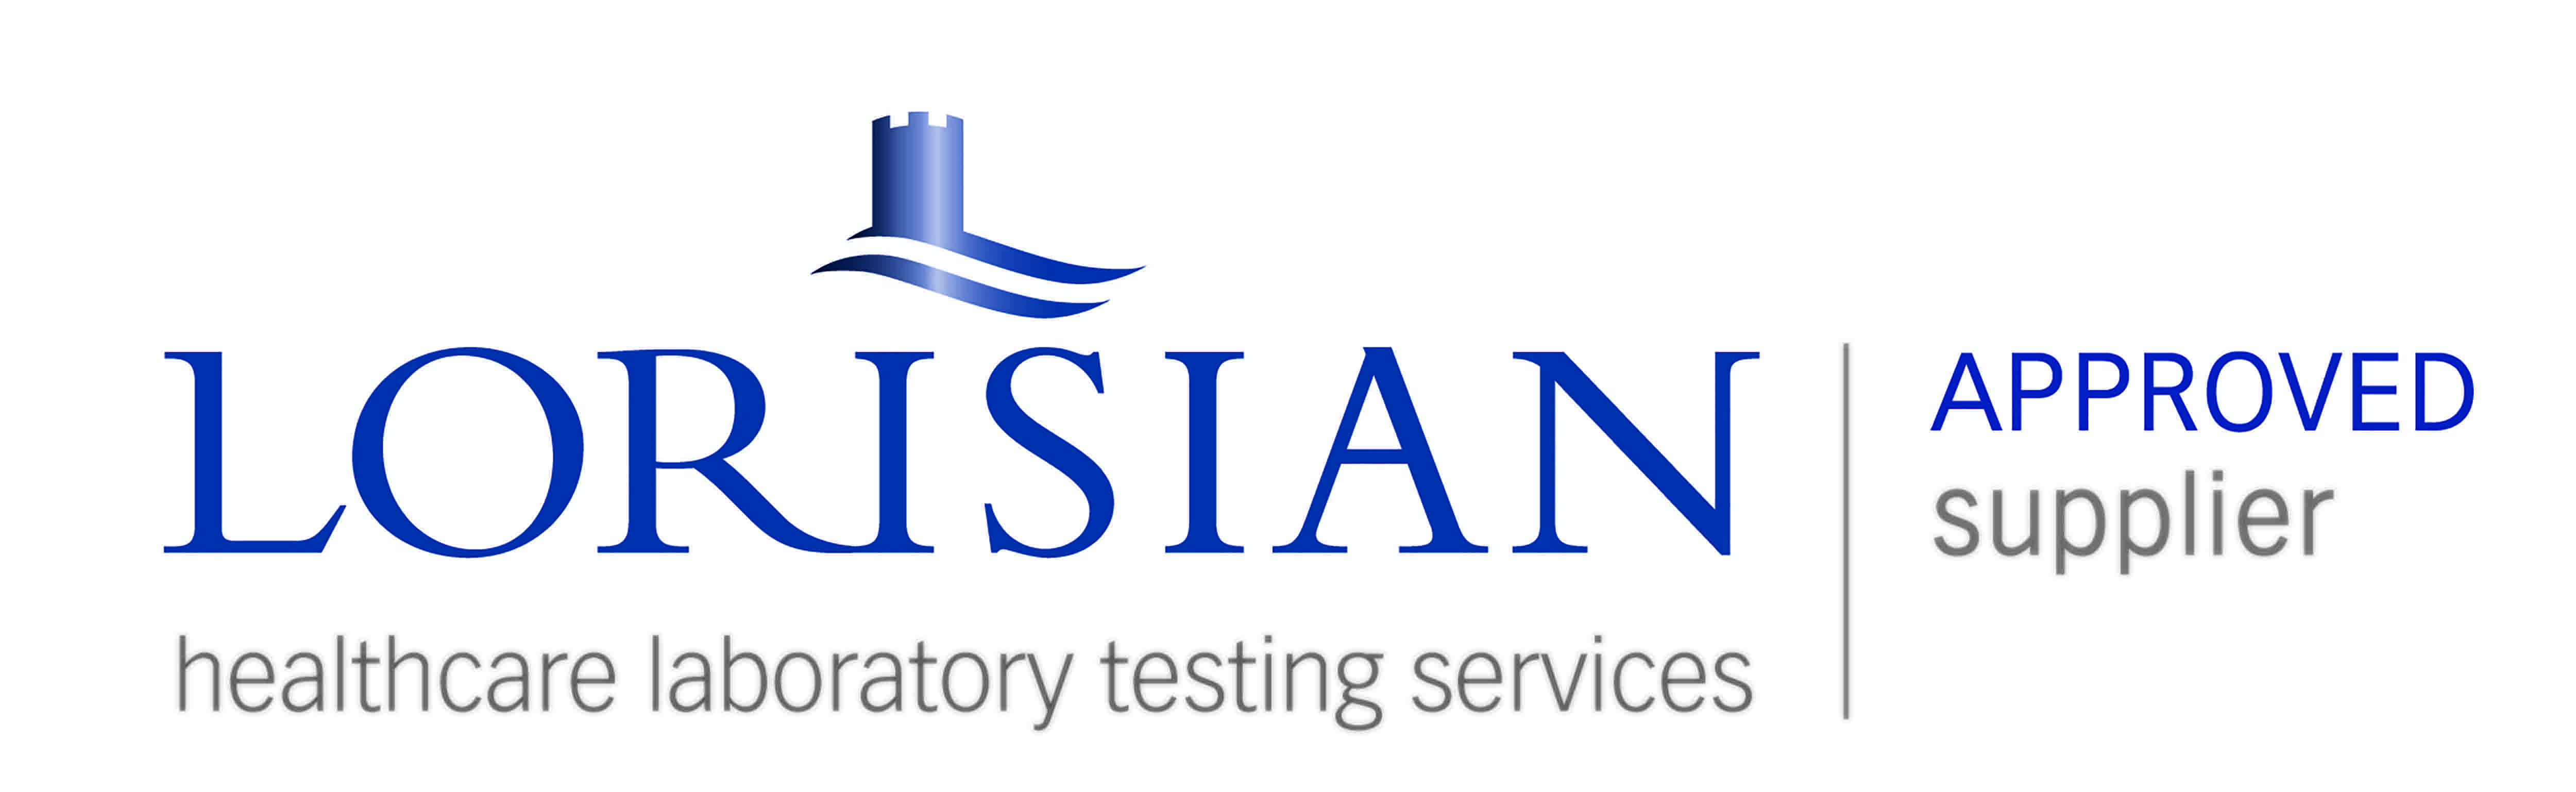 Lorisian Intolerance Testing - Approved Supplier